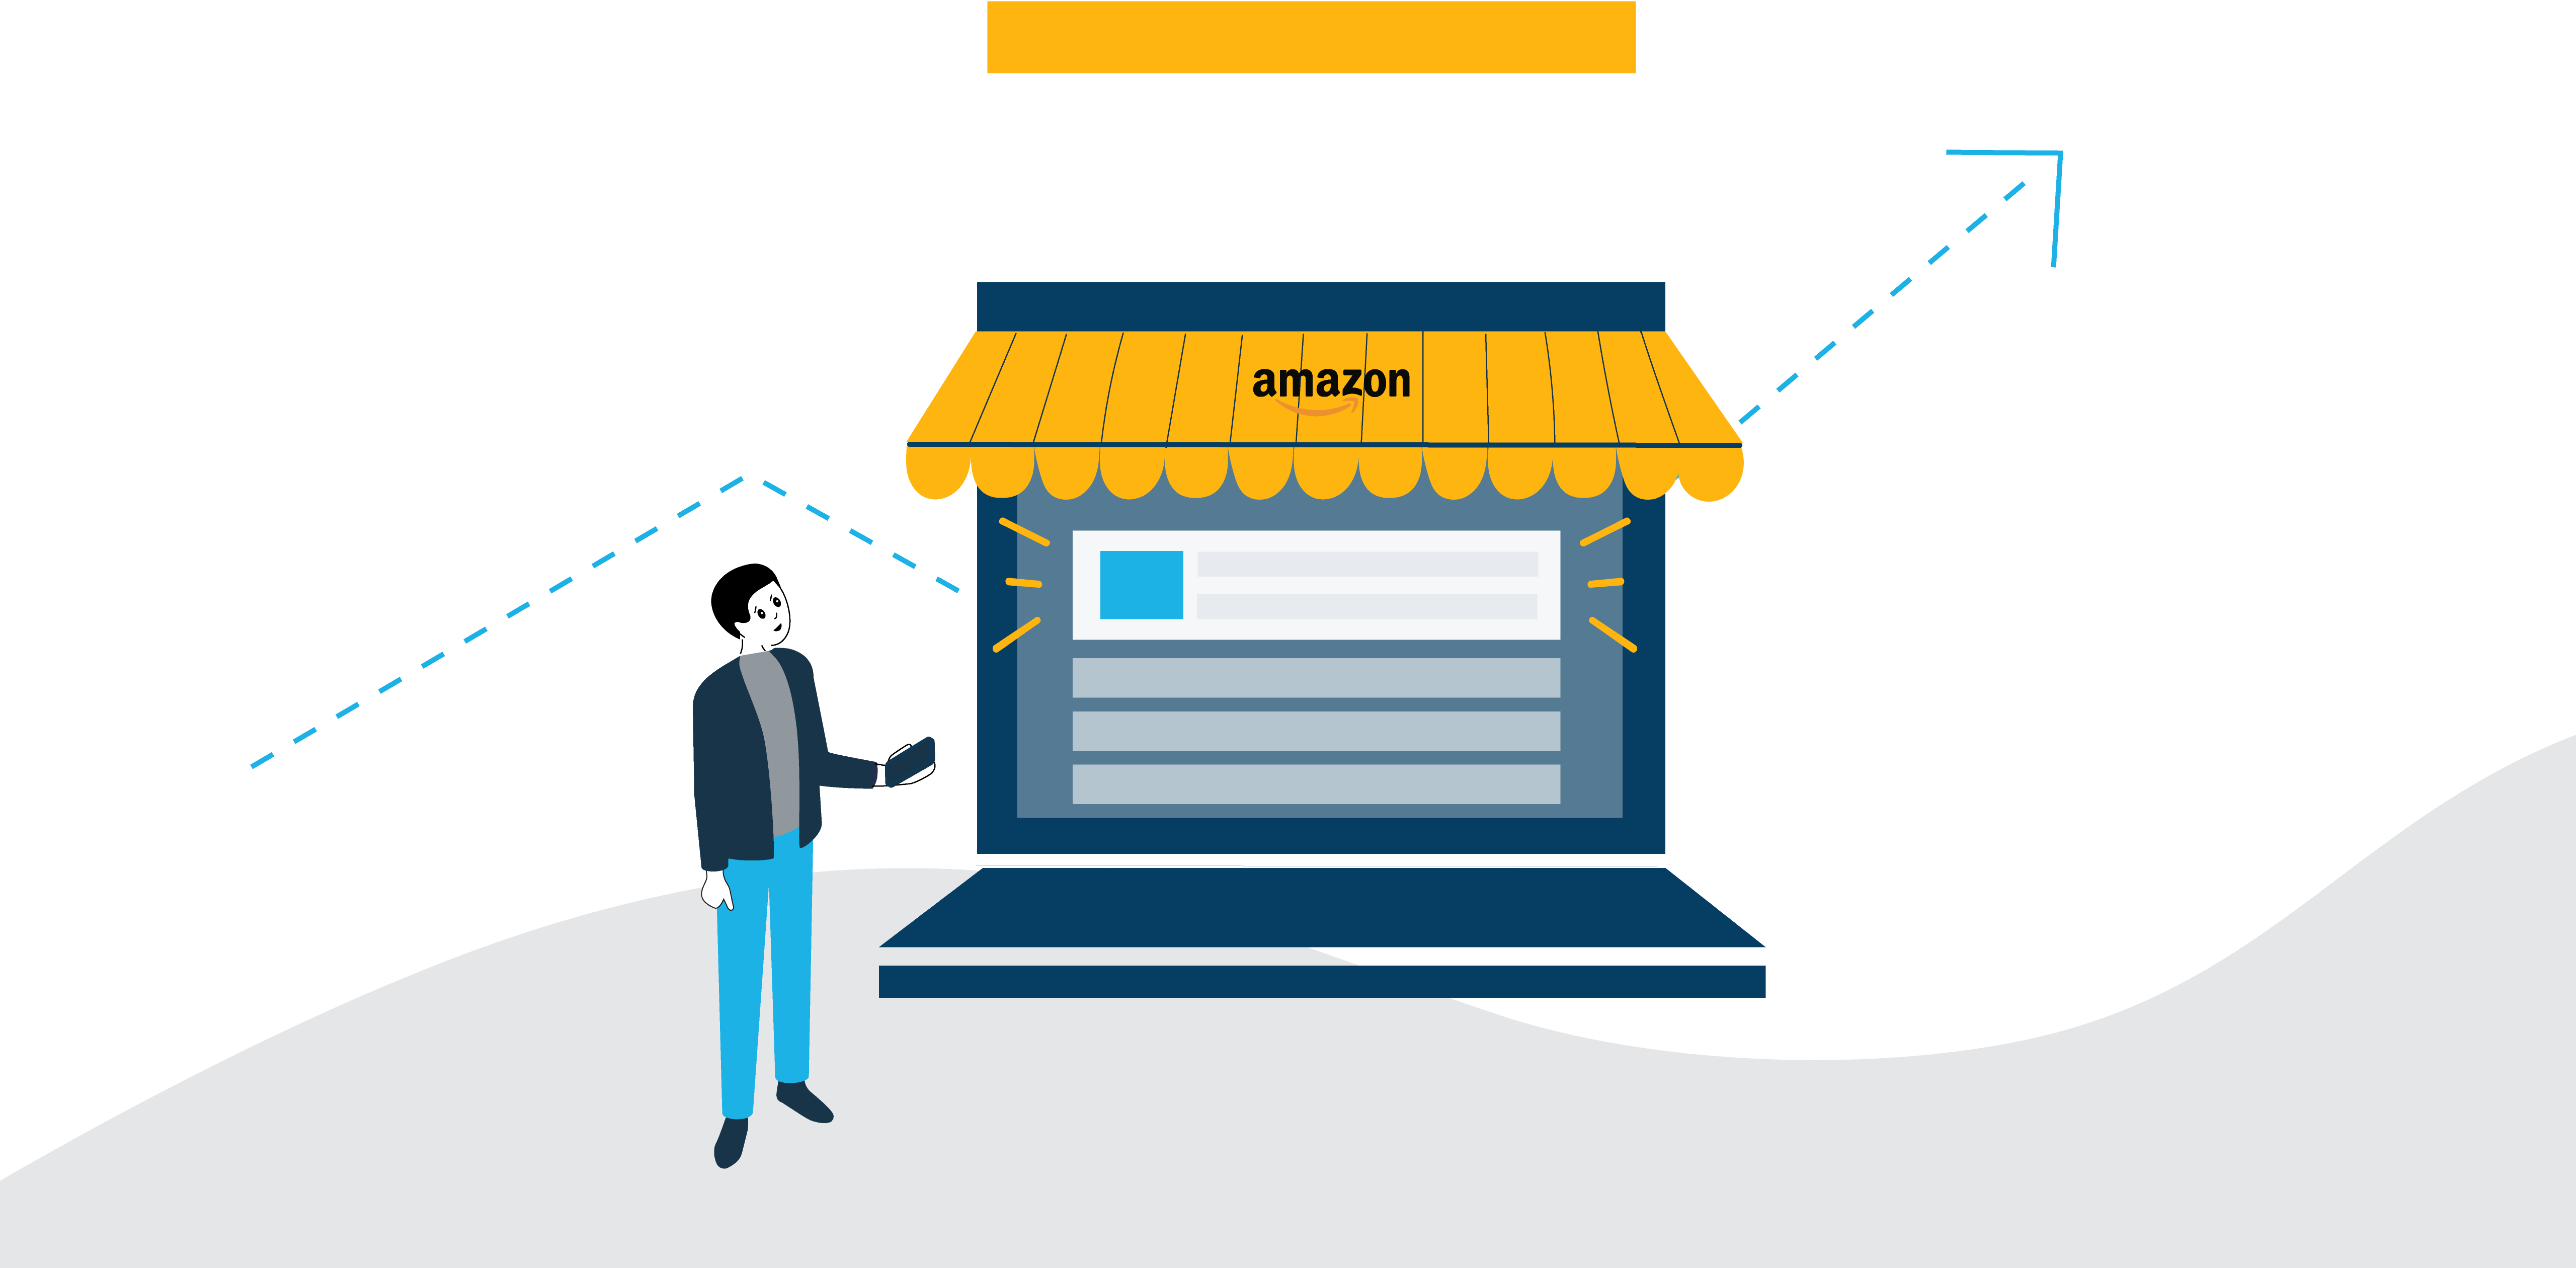 Image of man standing outside of an Amazon store holding a phone. Viewing Amazon ads online